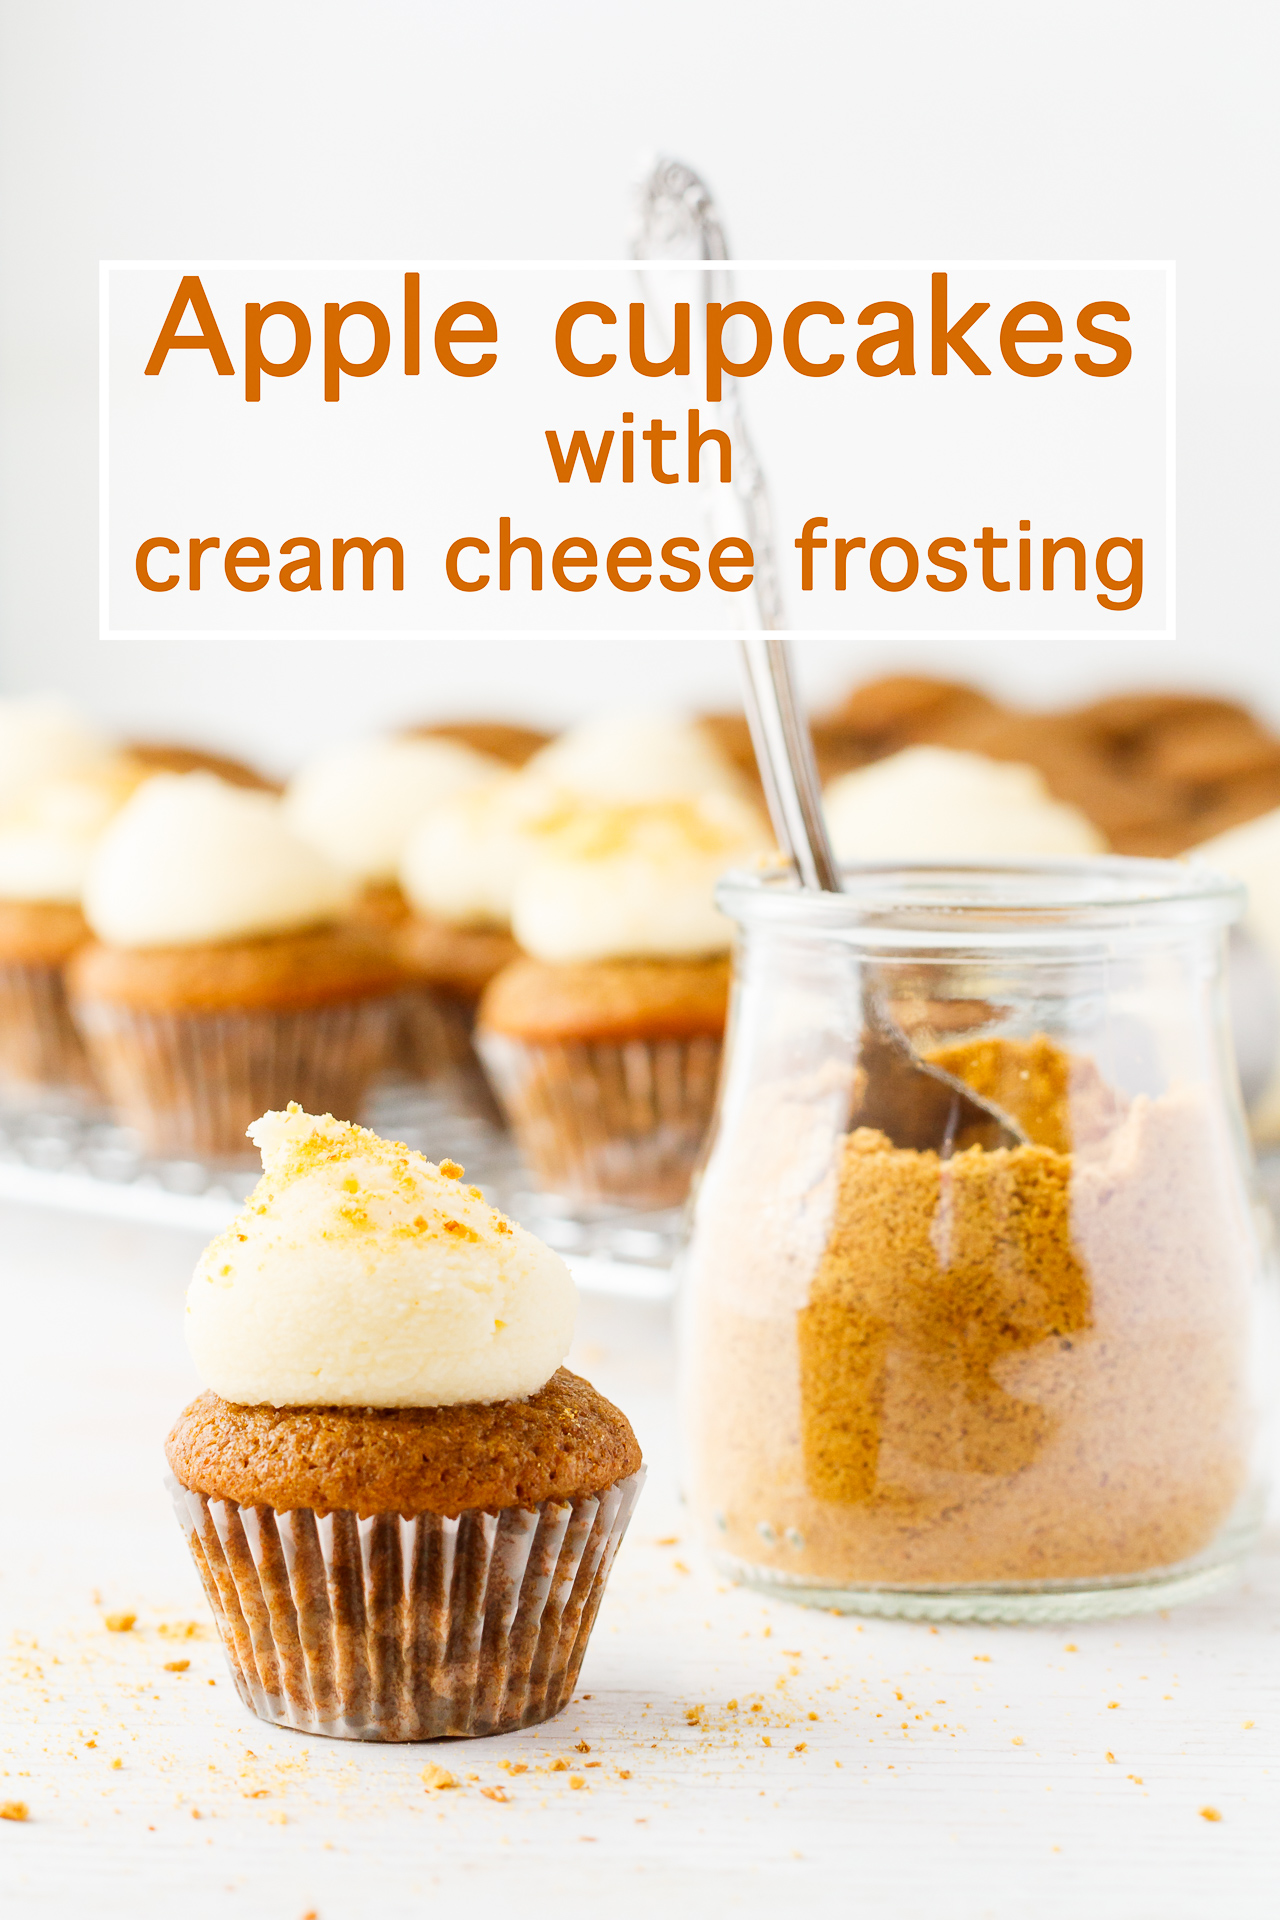 Mini apple cupcakes topped with dollops of cream cheese frosting and sprinkled with spoonfuls of graham cracker crumbs from a jar